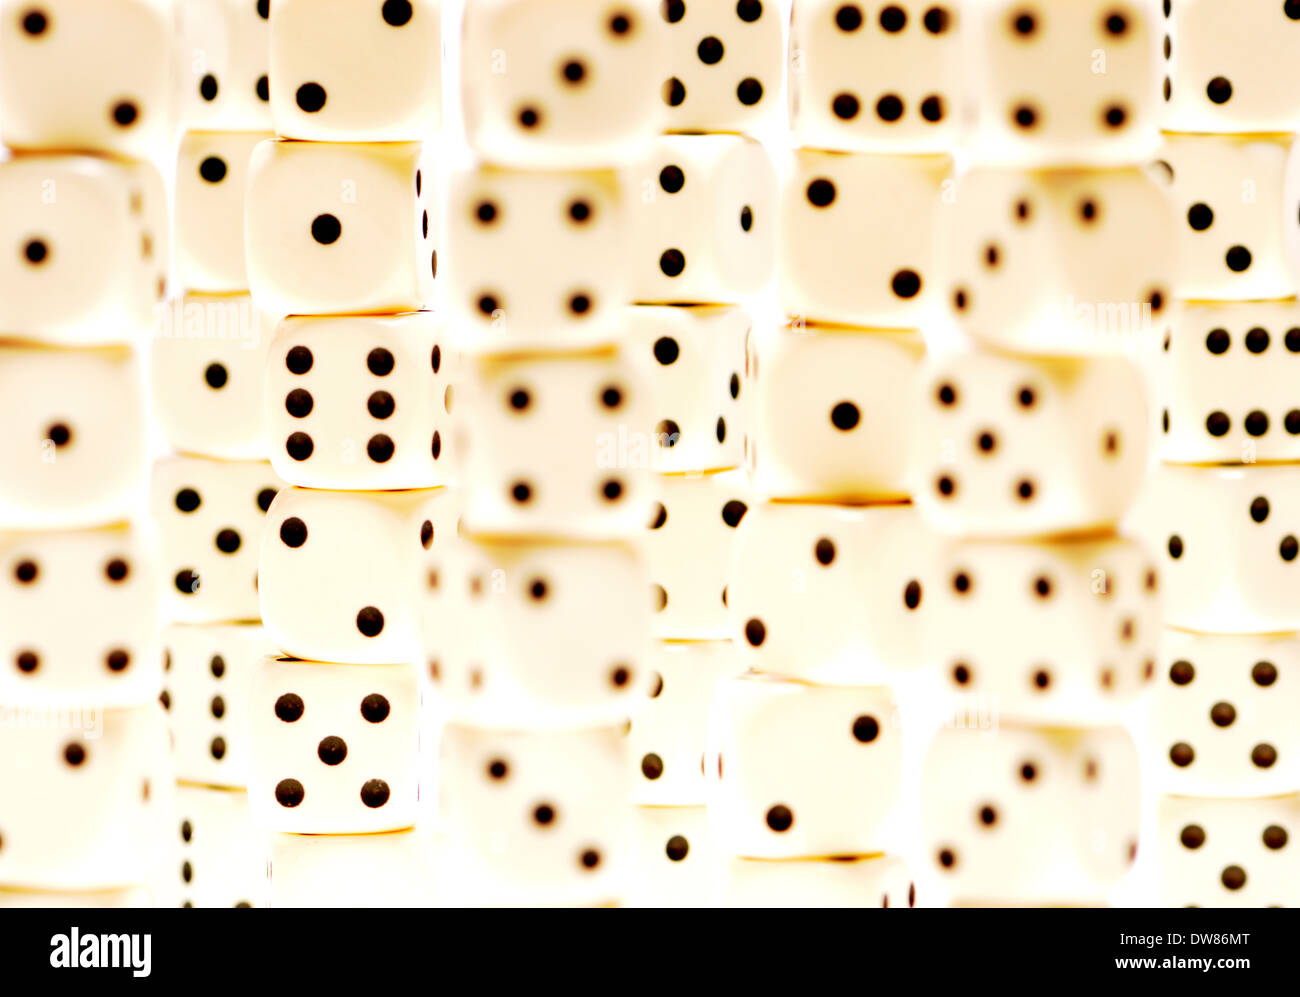 Stacks of dice - Stock Image